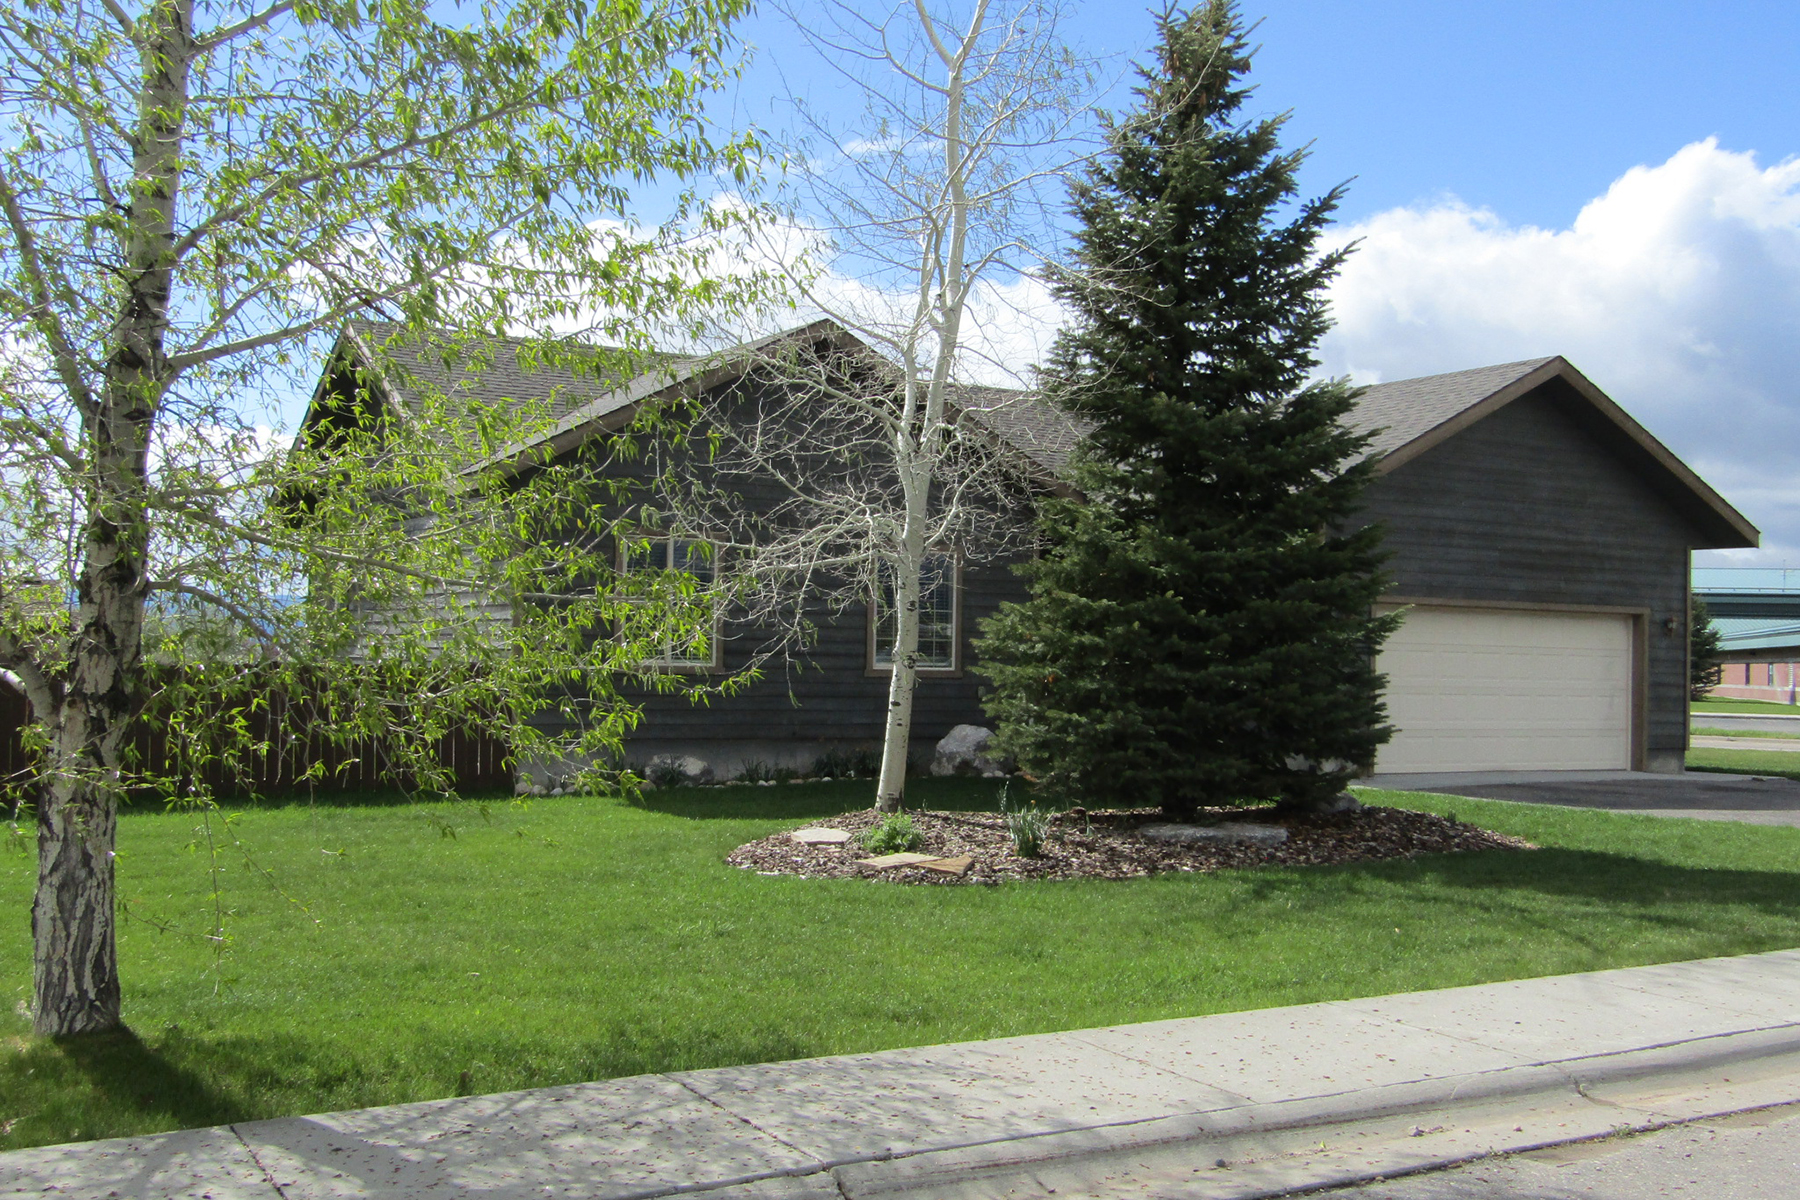 Single Family Home for Active at Newly Remodeled Driggs Home 685 Appaloosa Trl Driggs, Idaho 83422 United States